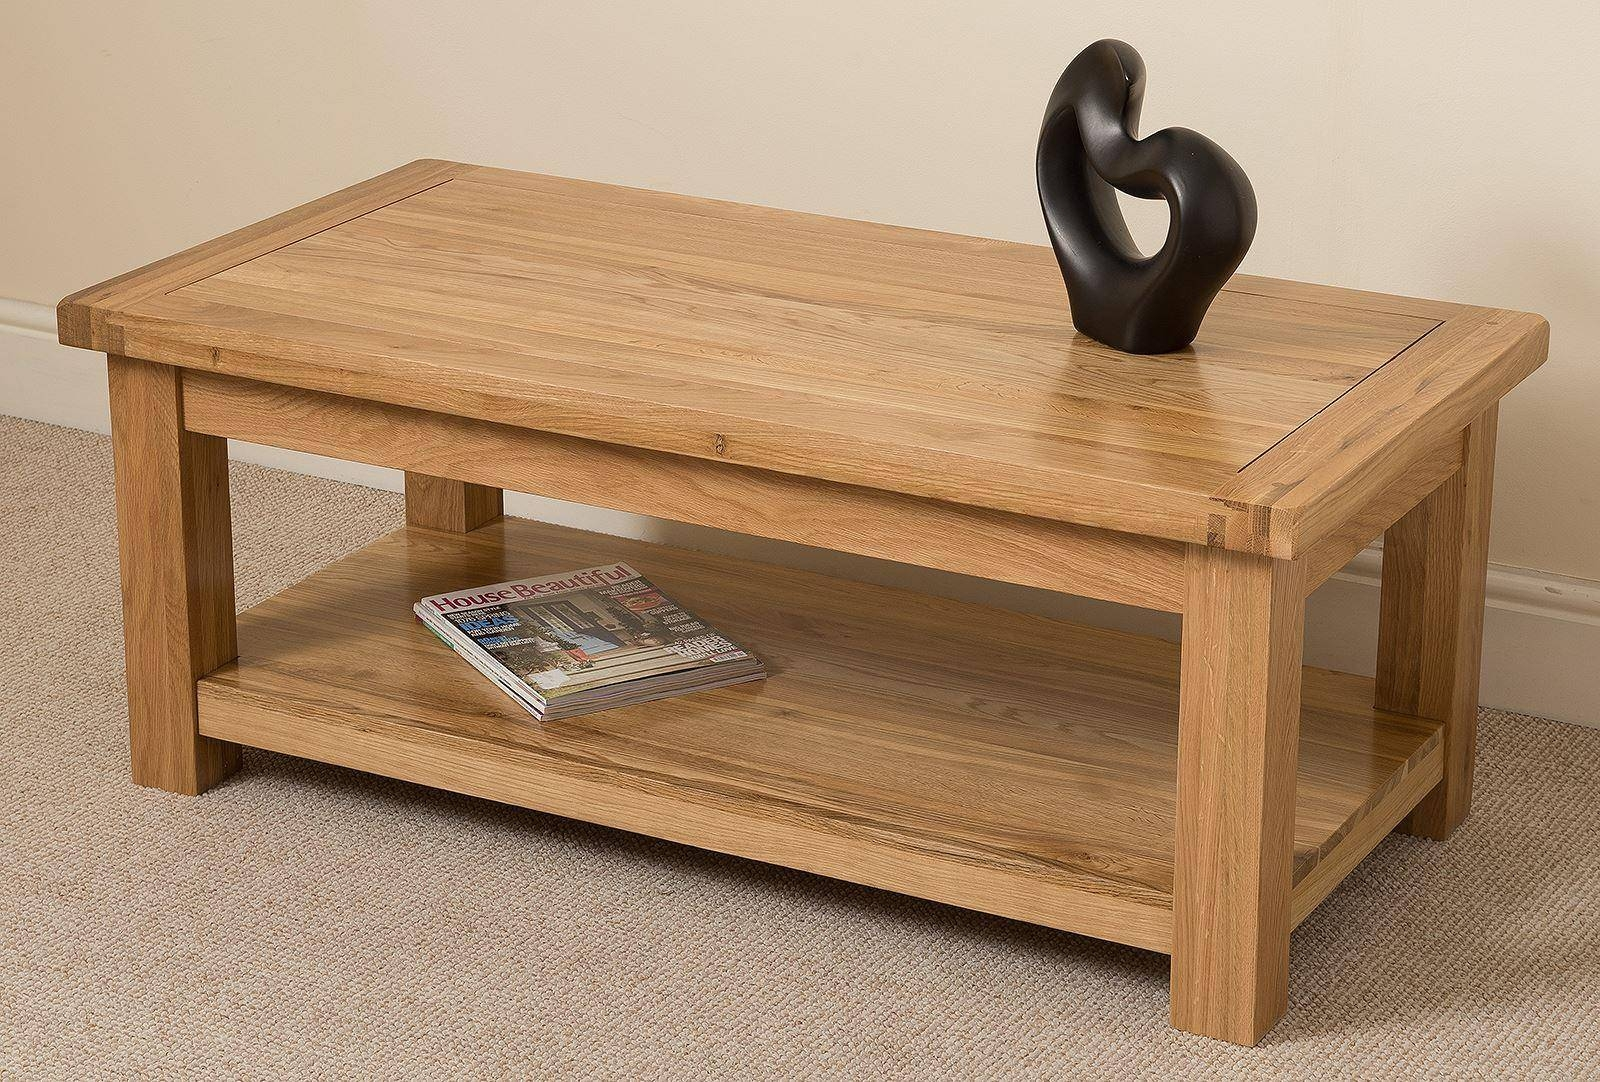 Cottage Light Solid Oak Coffee Table | Oak Furniture King intended for Oak Furniture Coffee Tables (Image 5 of 15)